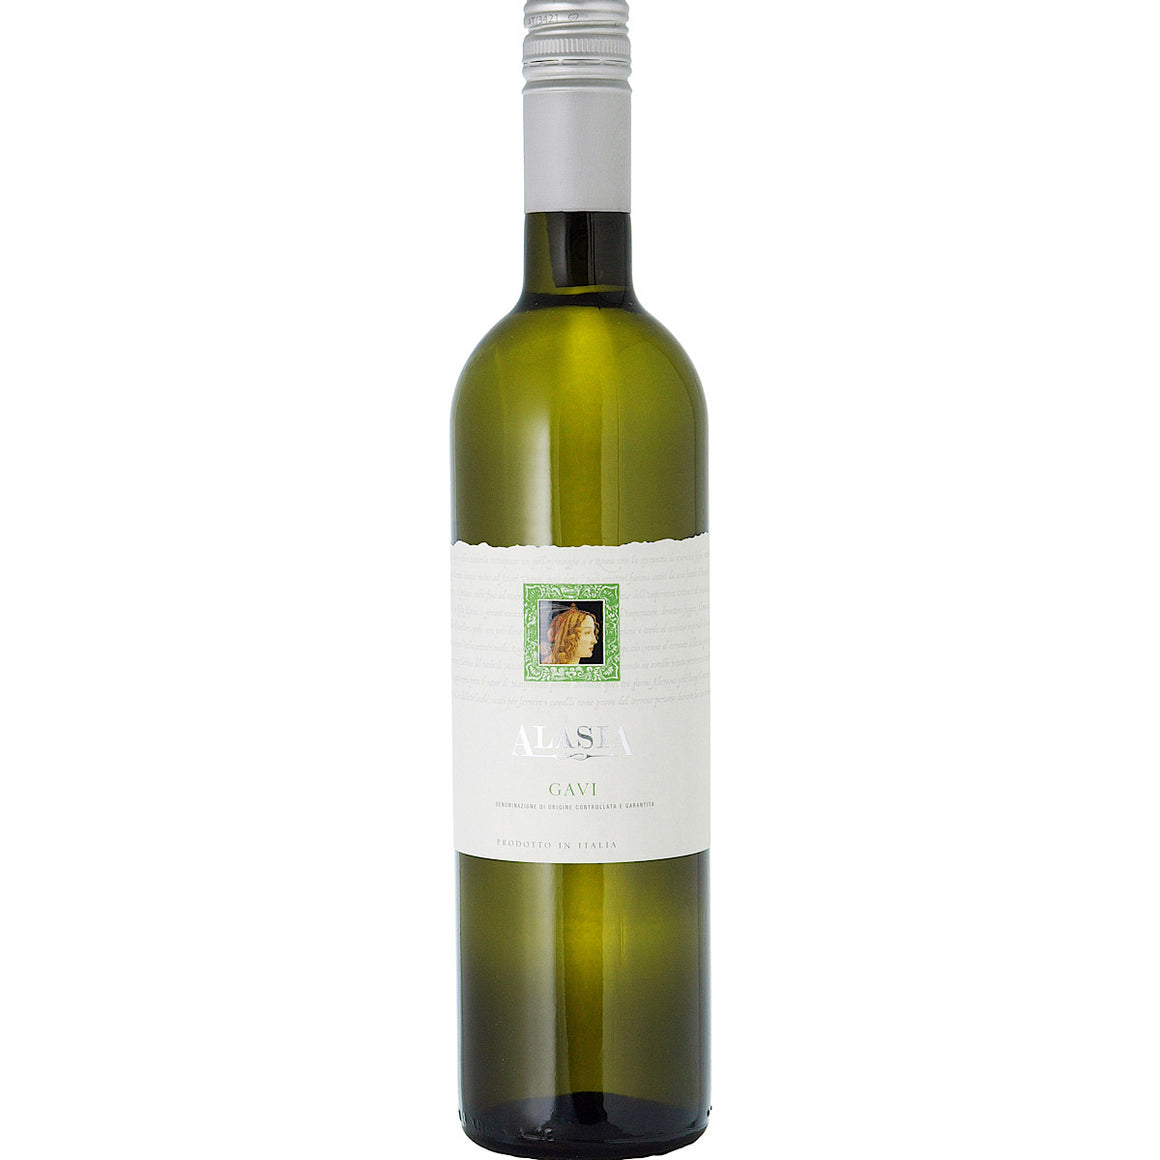 Alasia Gavi 6 Bottle Case 75cl